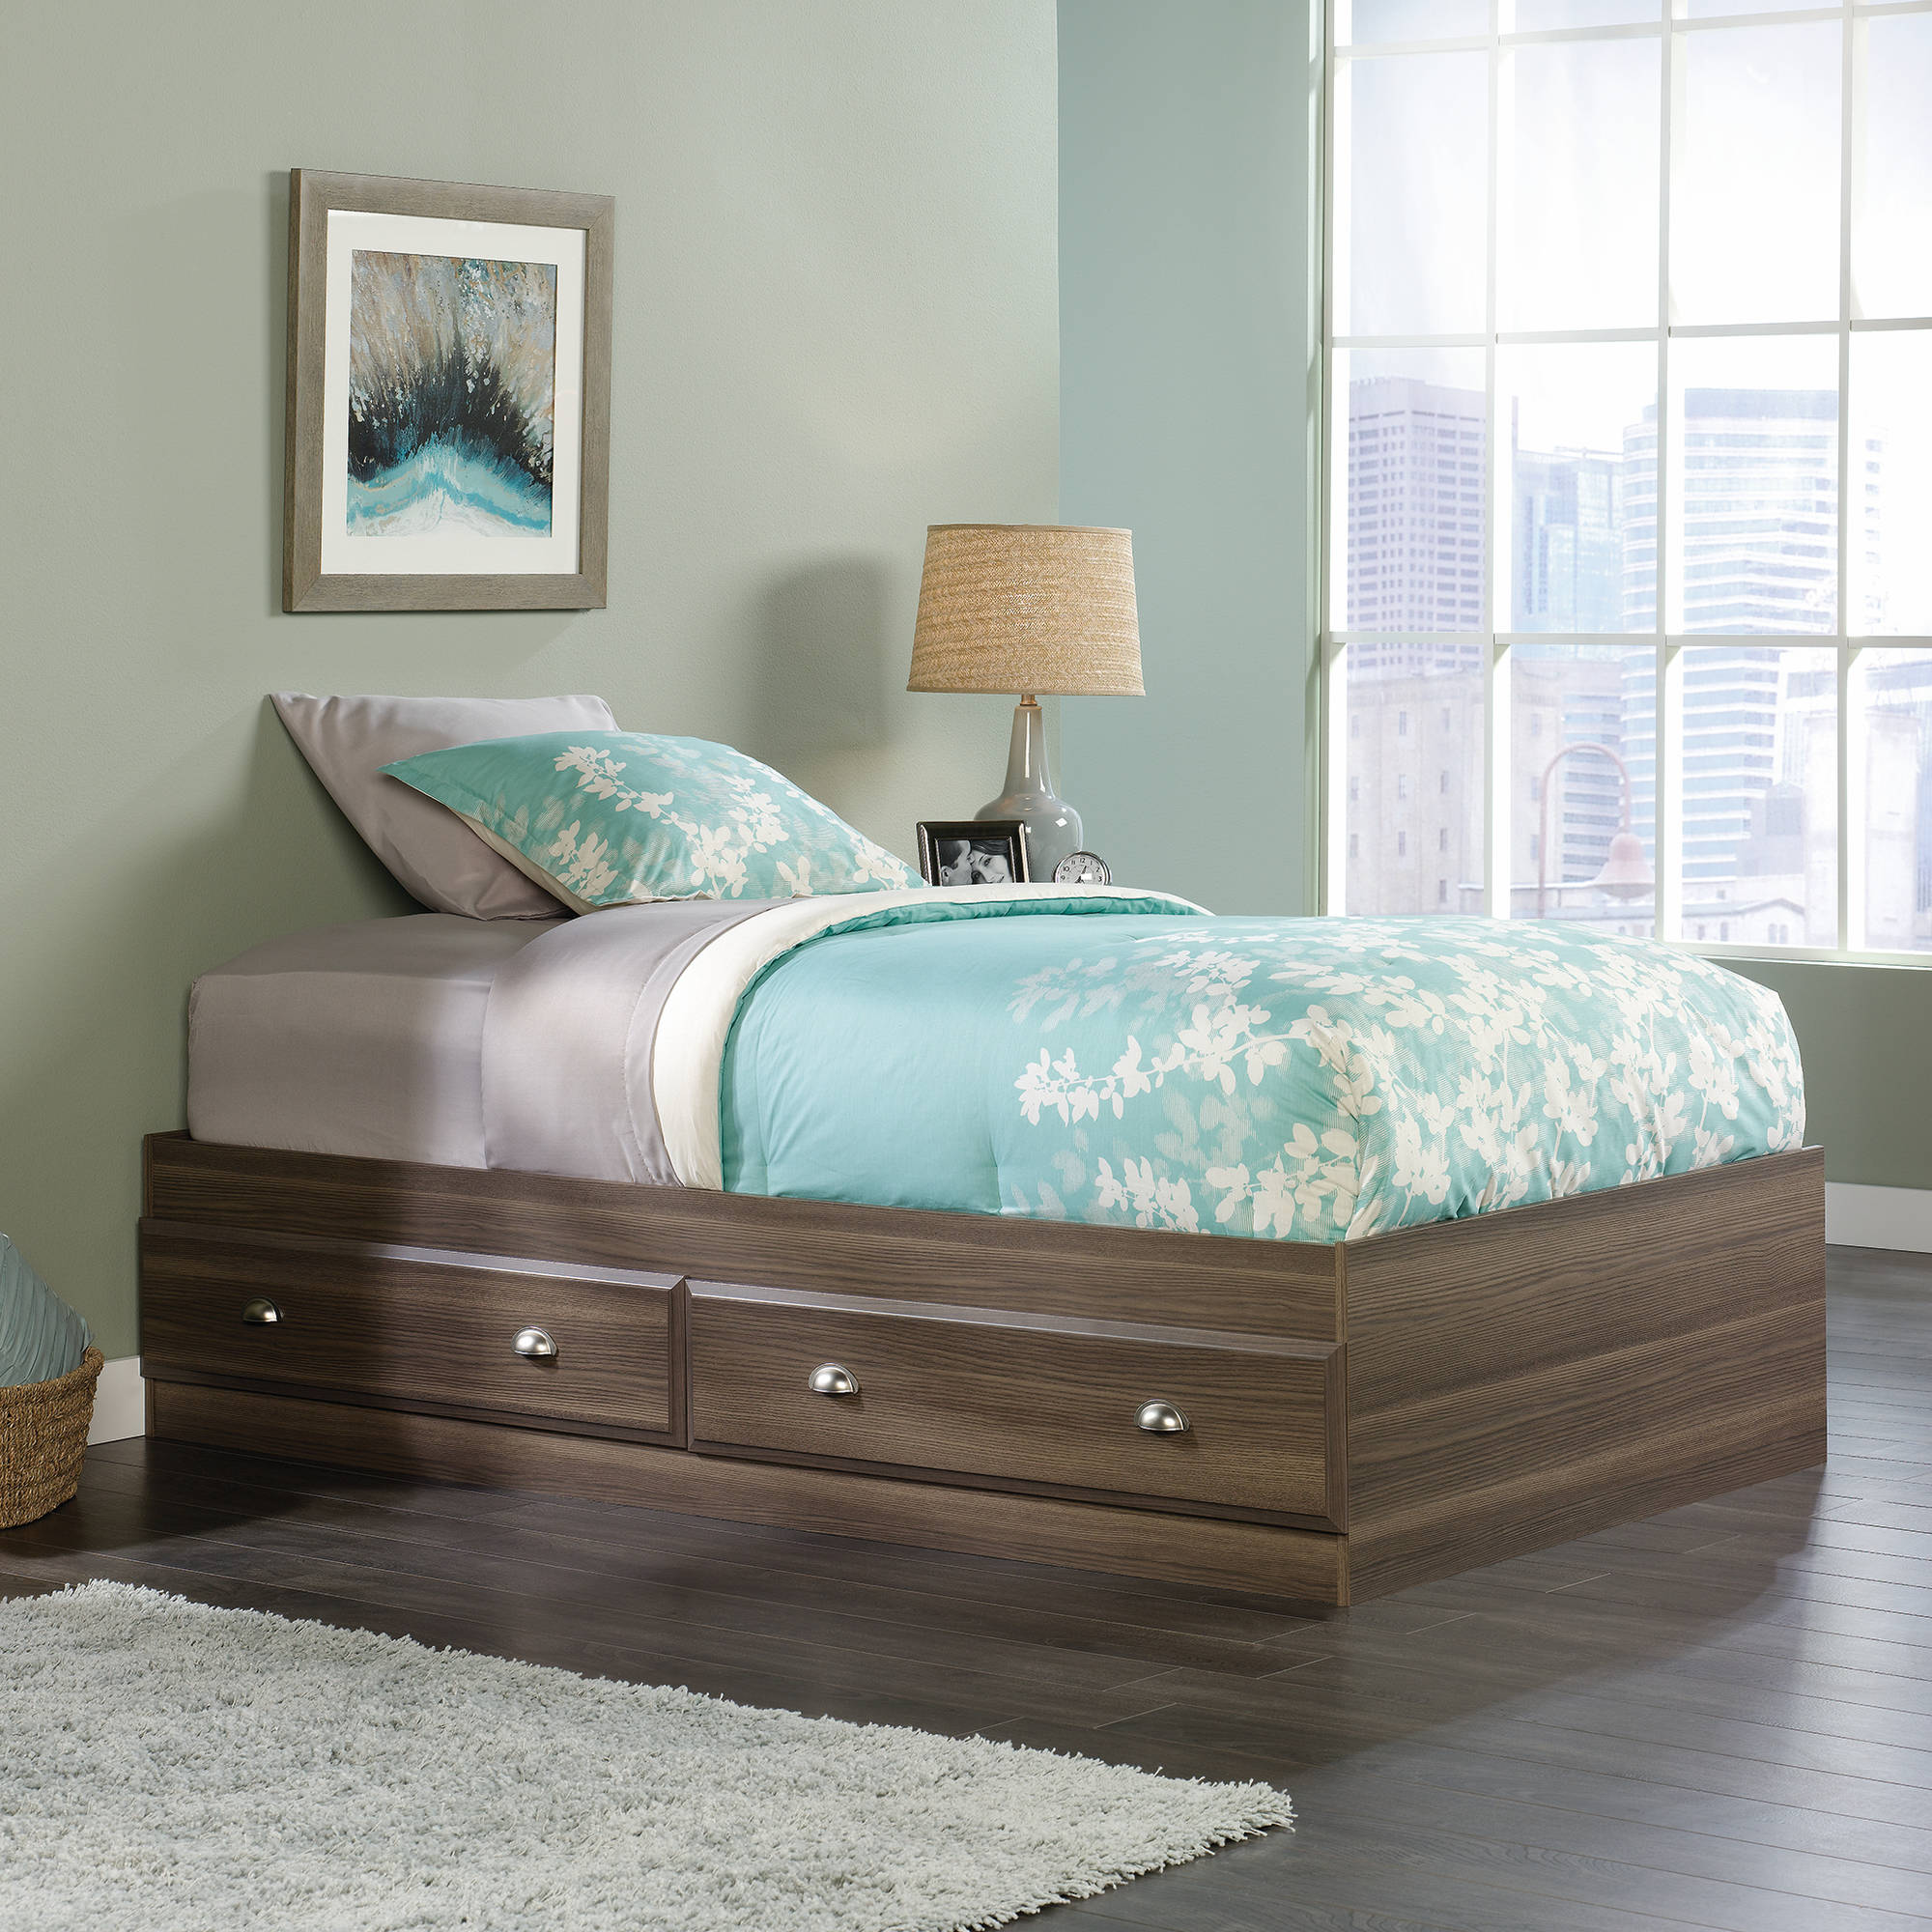 . Sauder Shoal Creek Collection Mates Bed  Diamond Ash   Walmart com